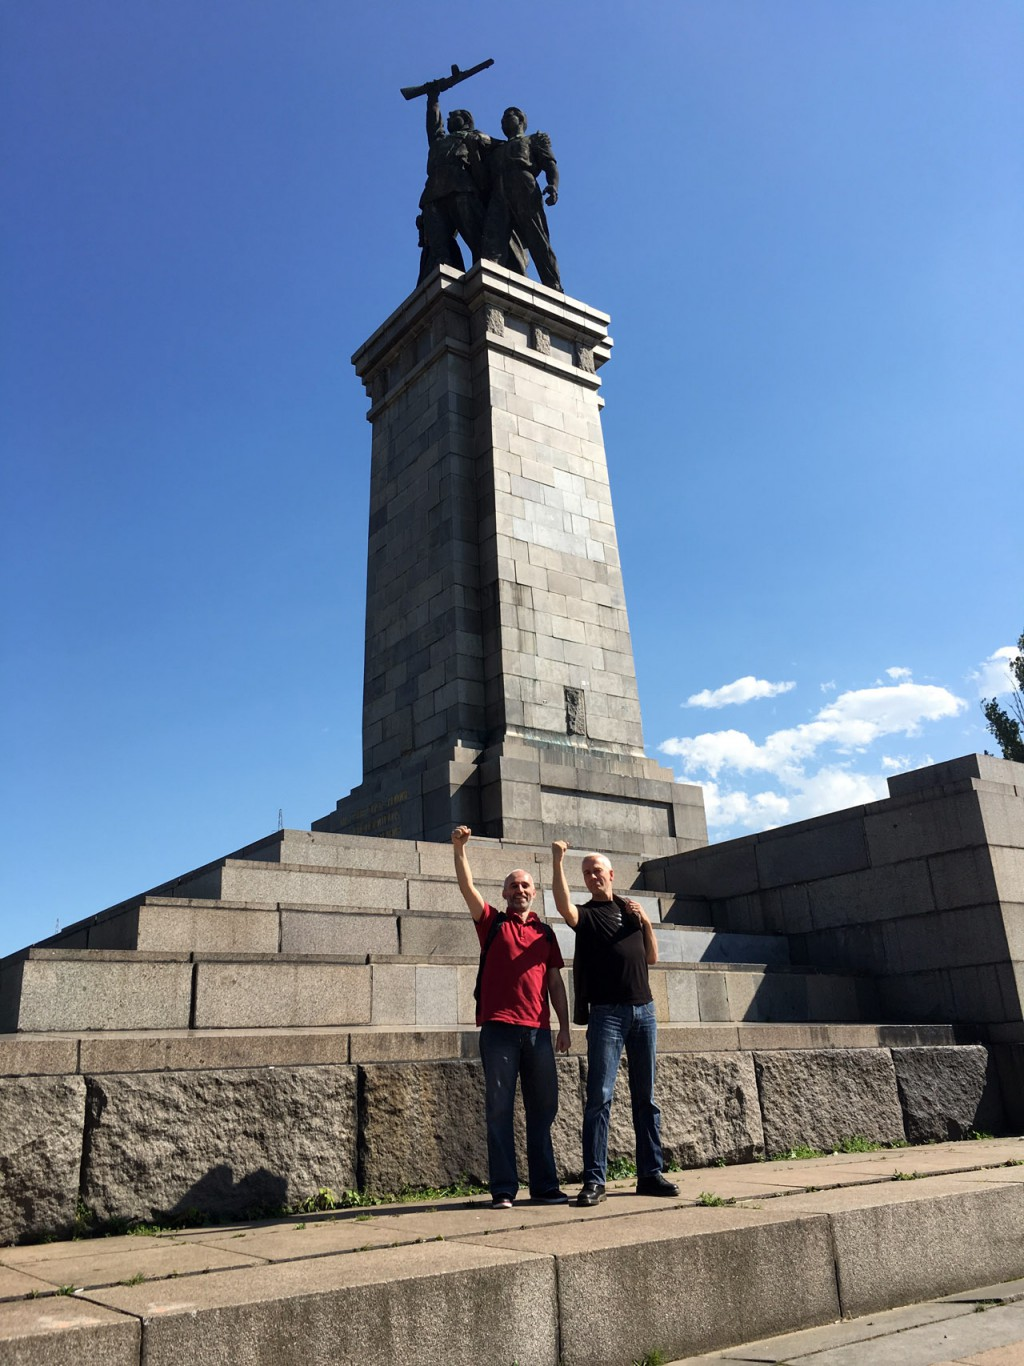 Two monuments – Boril Karaivanov & Lucas de Groot in Sofia 2016